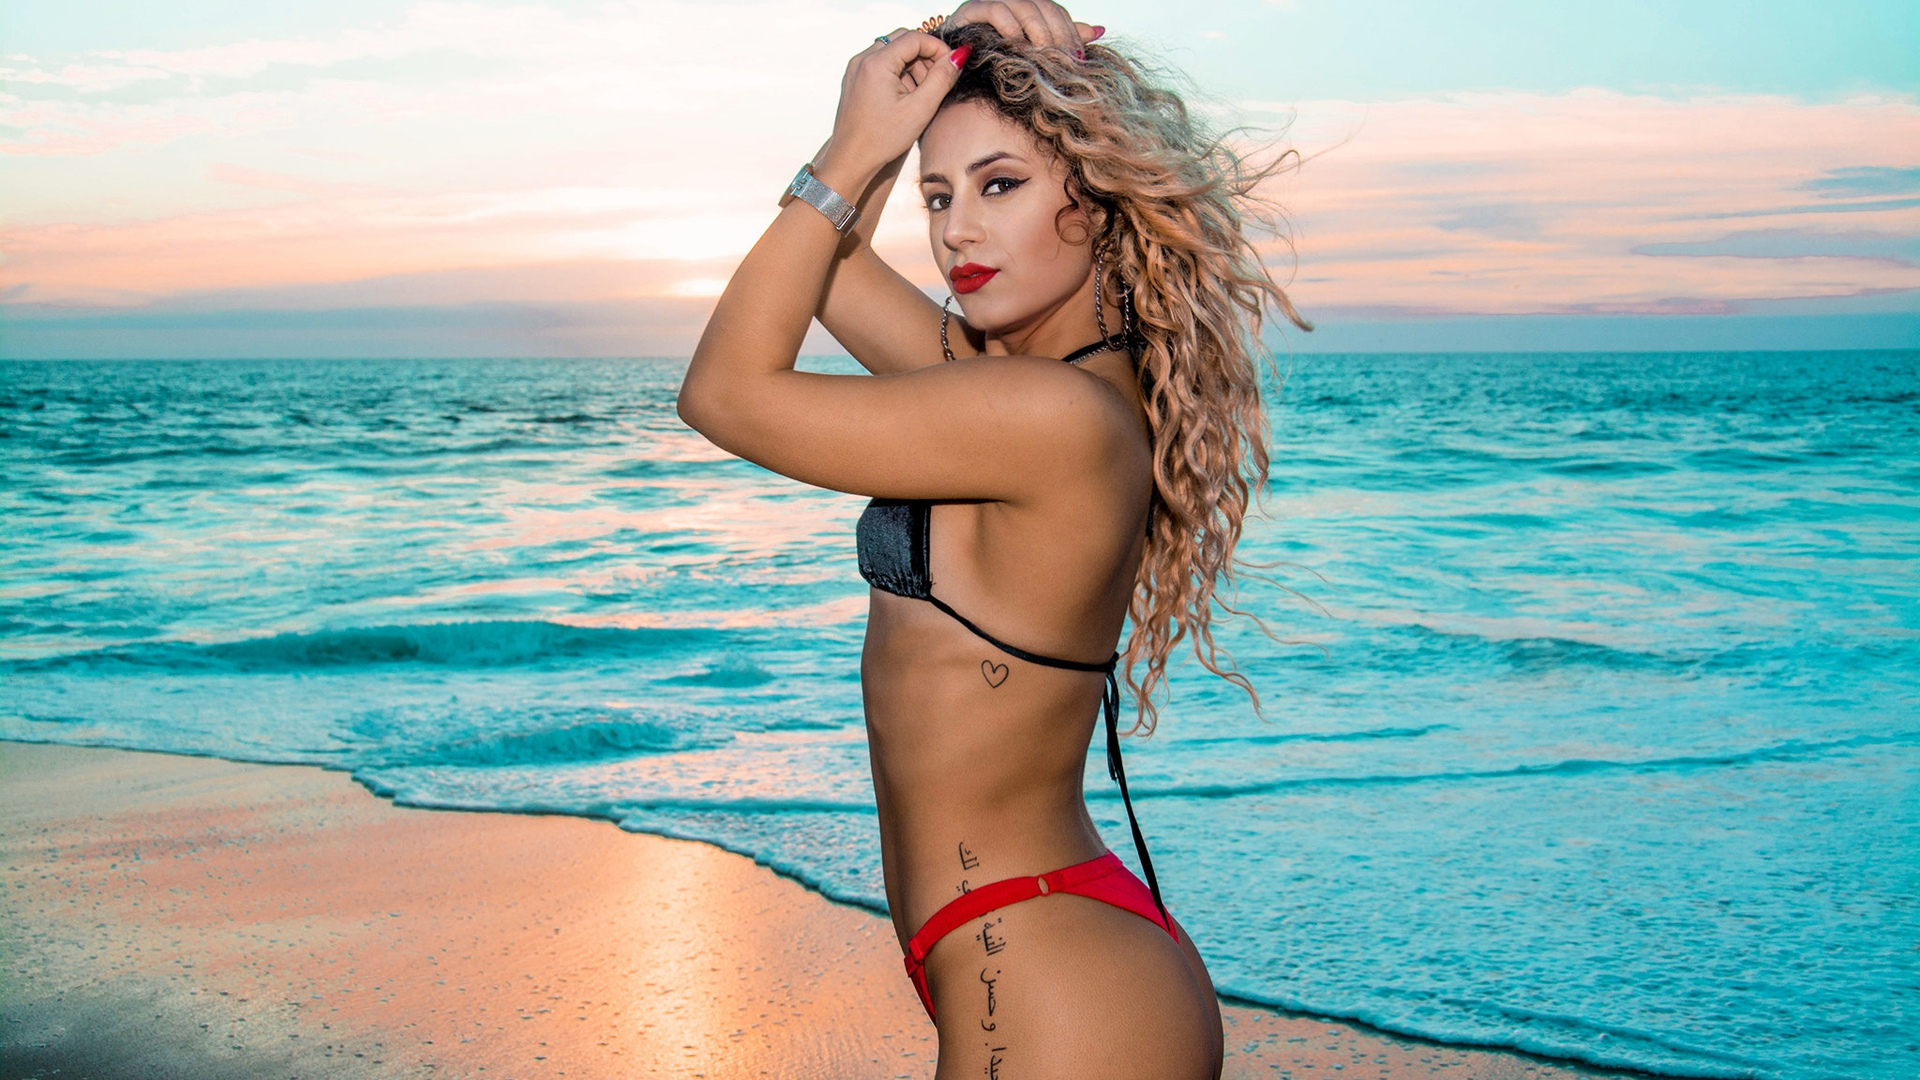 women, blonde, bikini, sea, tattoo, sunset, sand, belly, ass, women outdoors, red nails, red lipstick